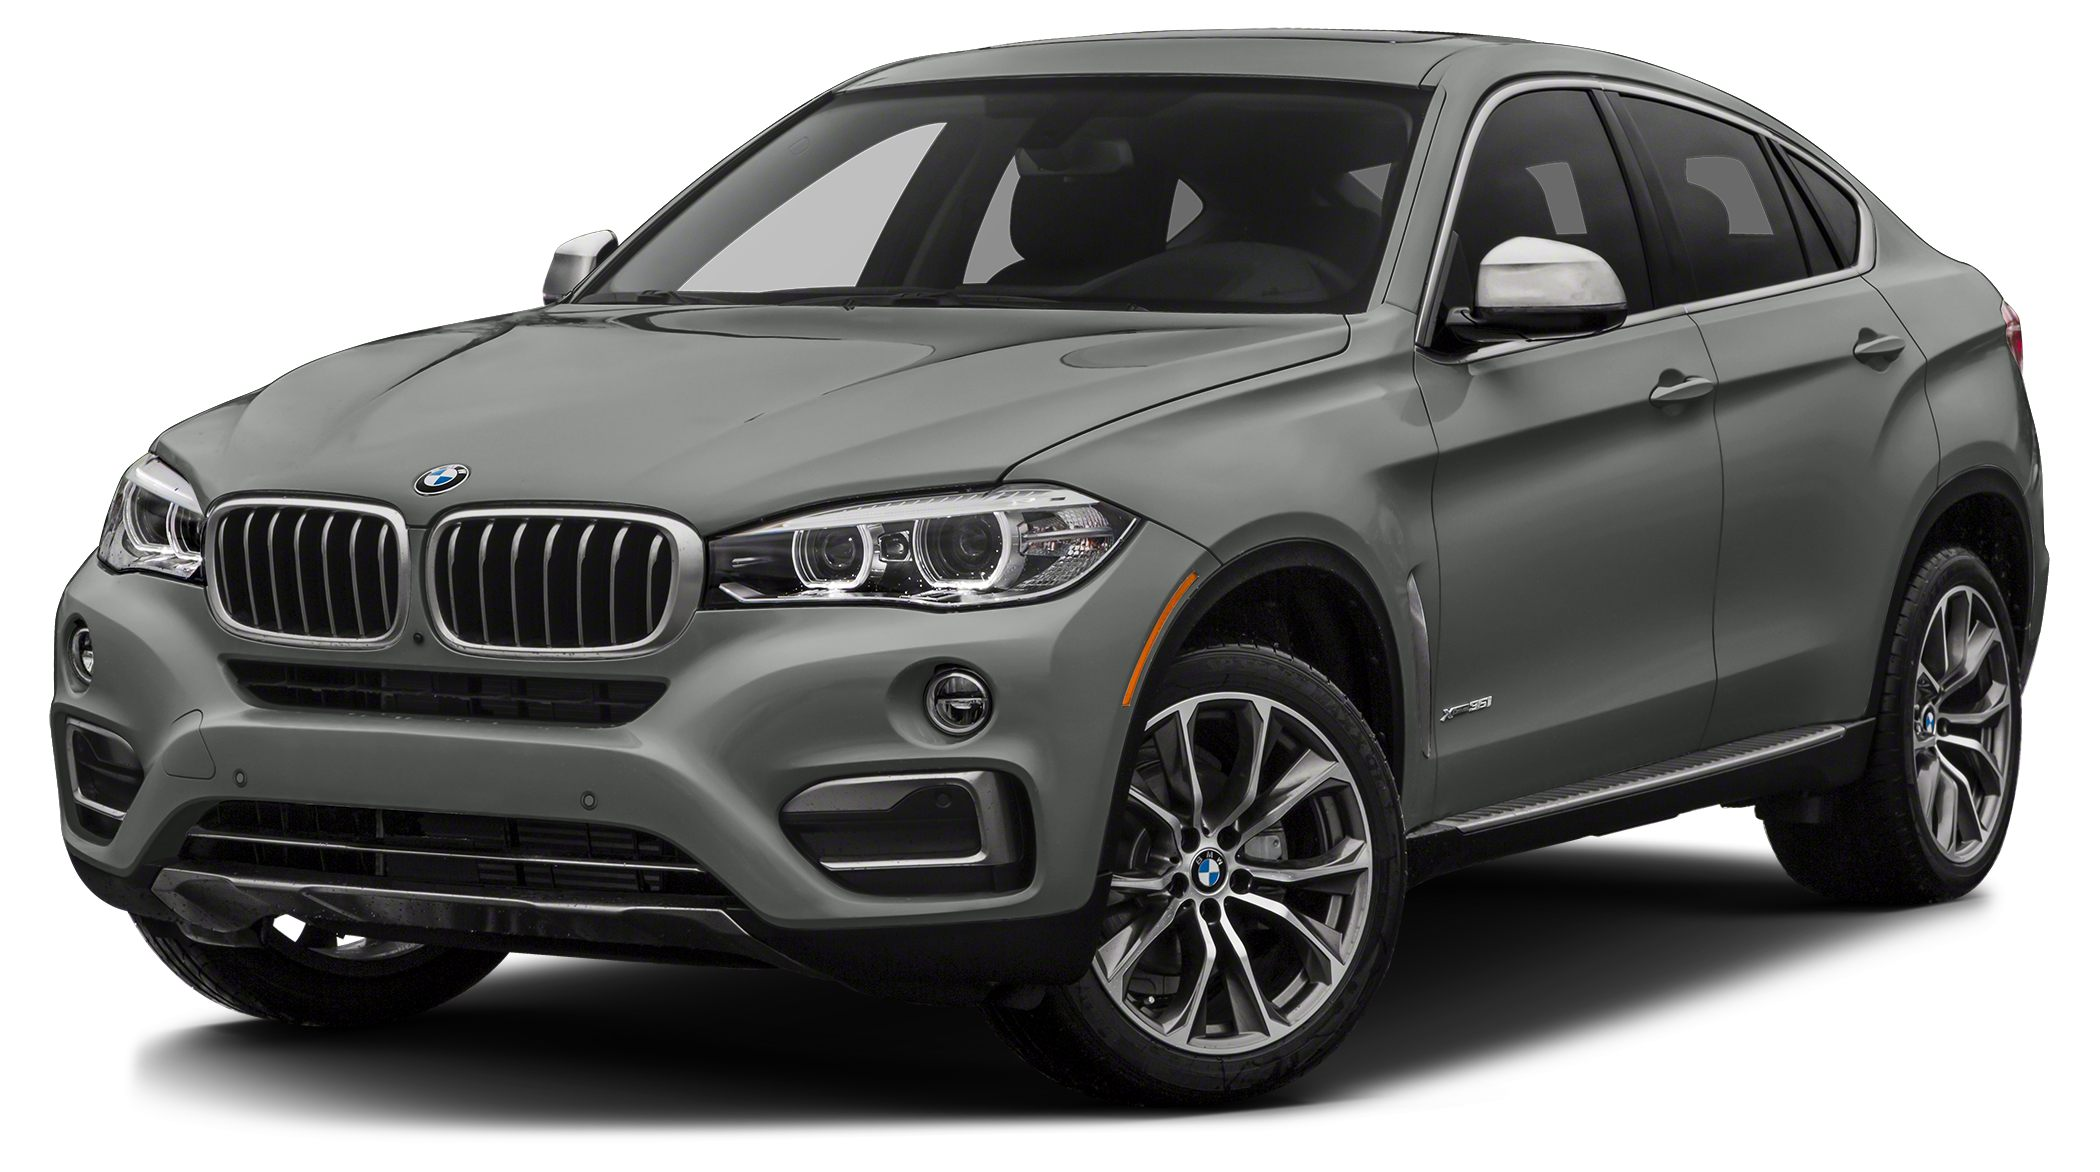 2016 BMW X6 xDrive35i Recent Arrival Priced below KBB Fair Purchase Price CARFAX ONE OWNER S